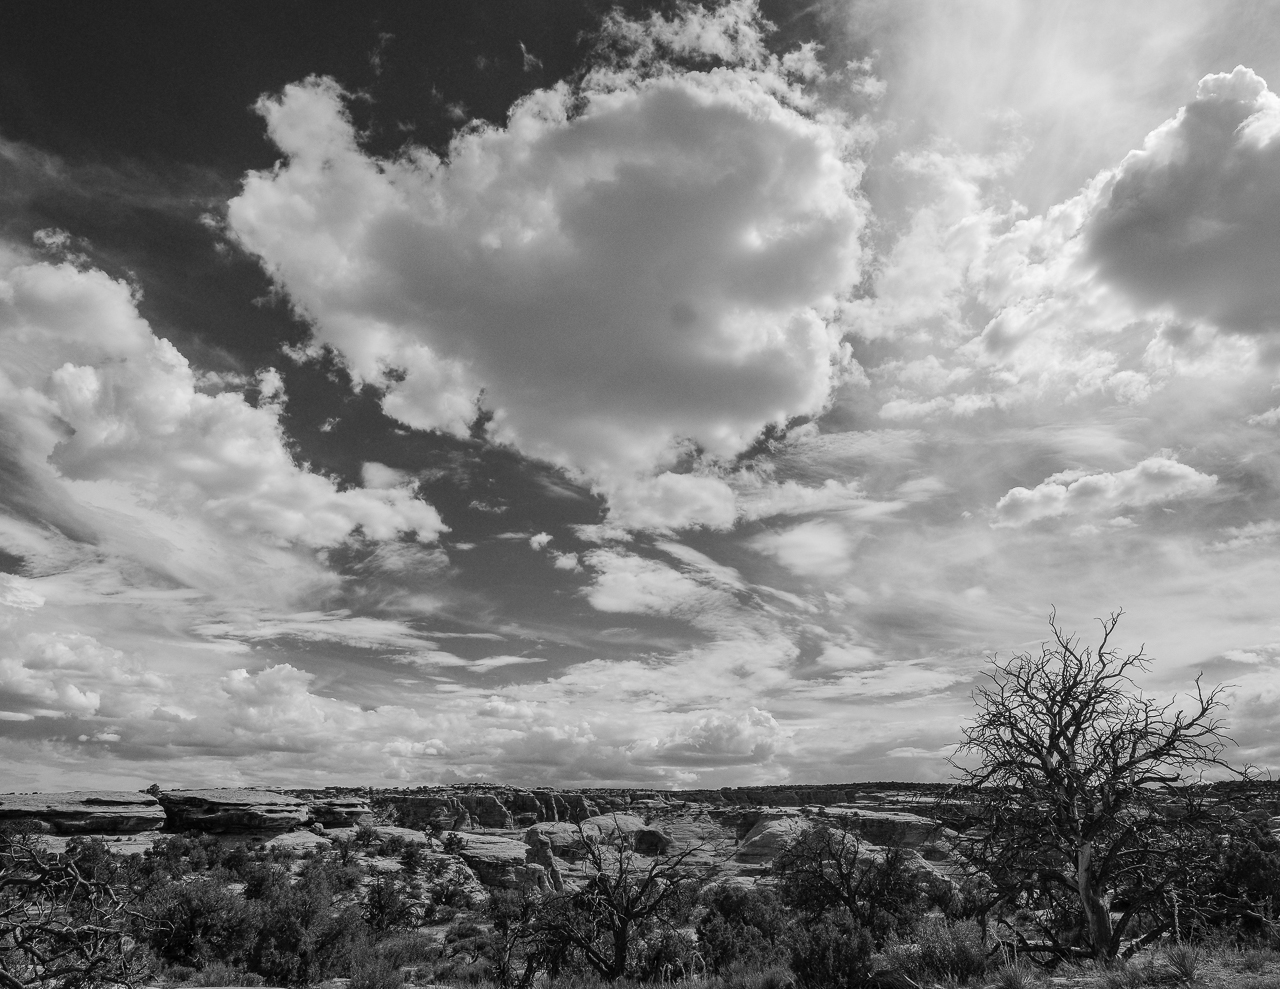 Day 211 - 365 Day B&W Photo Challenge - The midday skies cover the desert landscapes. - Fuji X-T3, XF 14mm f/2.8, Acros  R Film Simulation